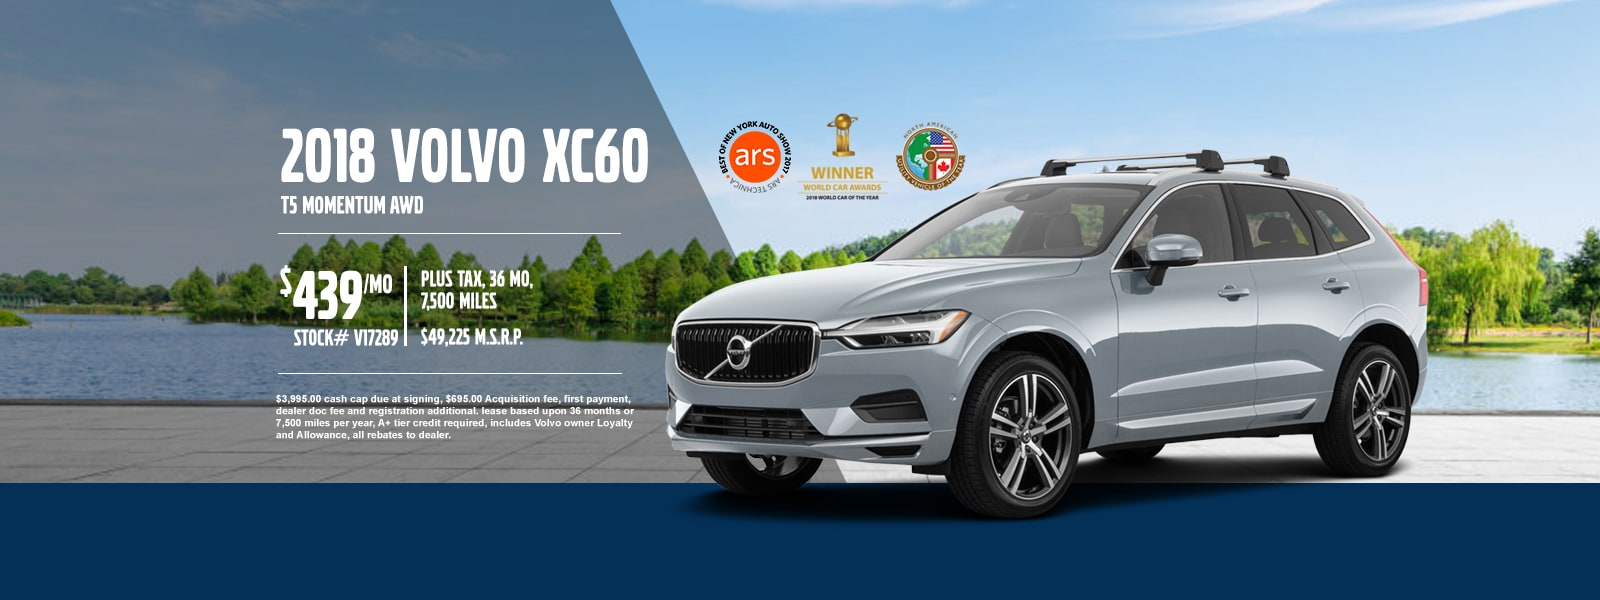 New and Used Volvo Vehicles | Patrick Volvo Cars of Worcester, MA